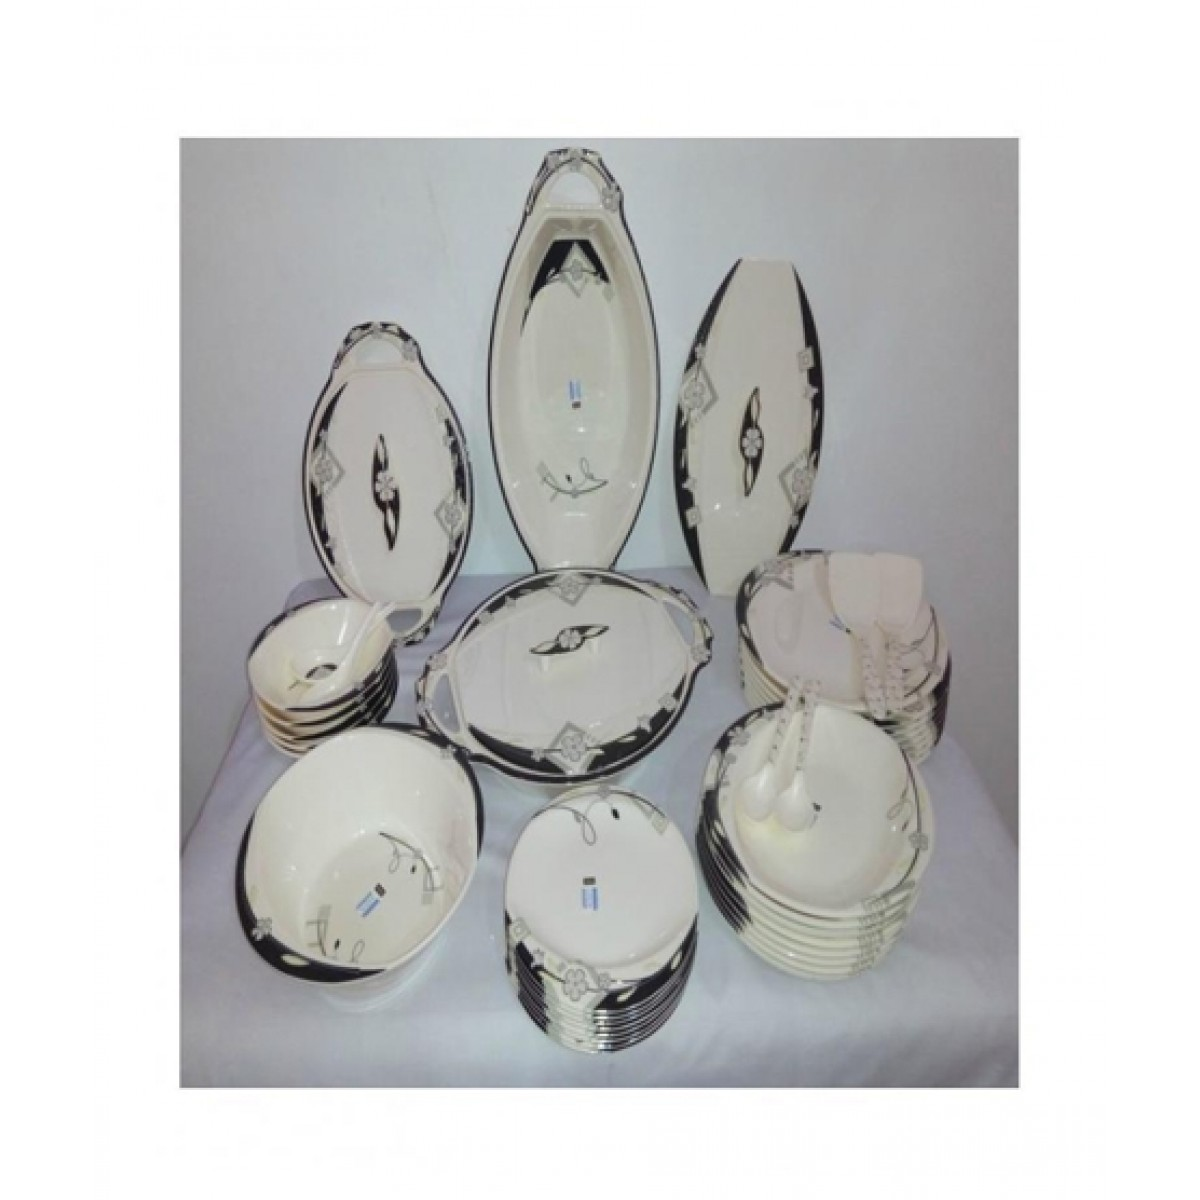 4a1145e0fef MB Traders Milton Texture Dinner Set Price in Pakistan